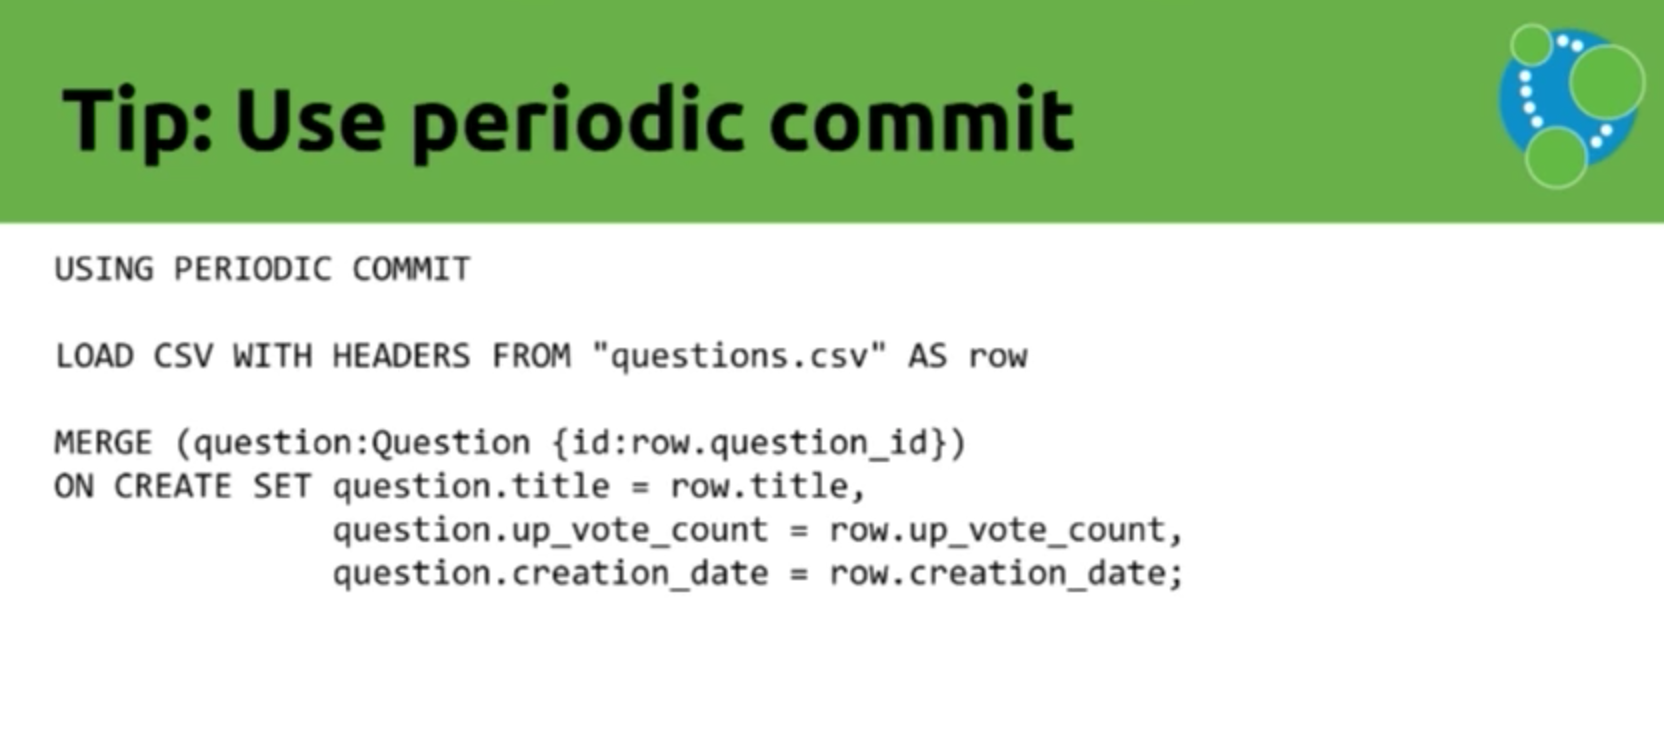 Data import tip: Use periodic commit